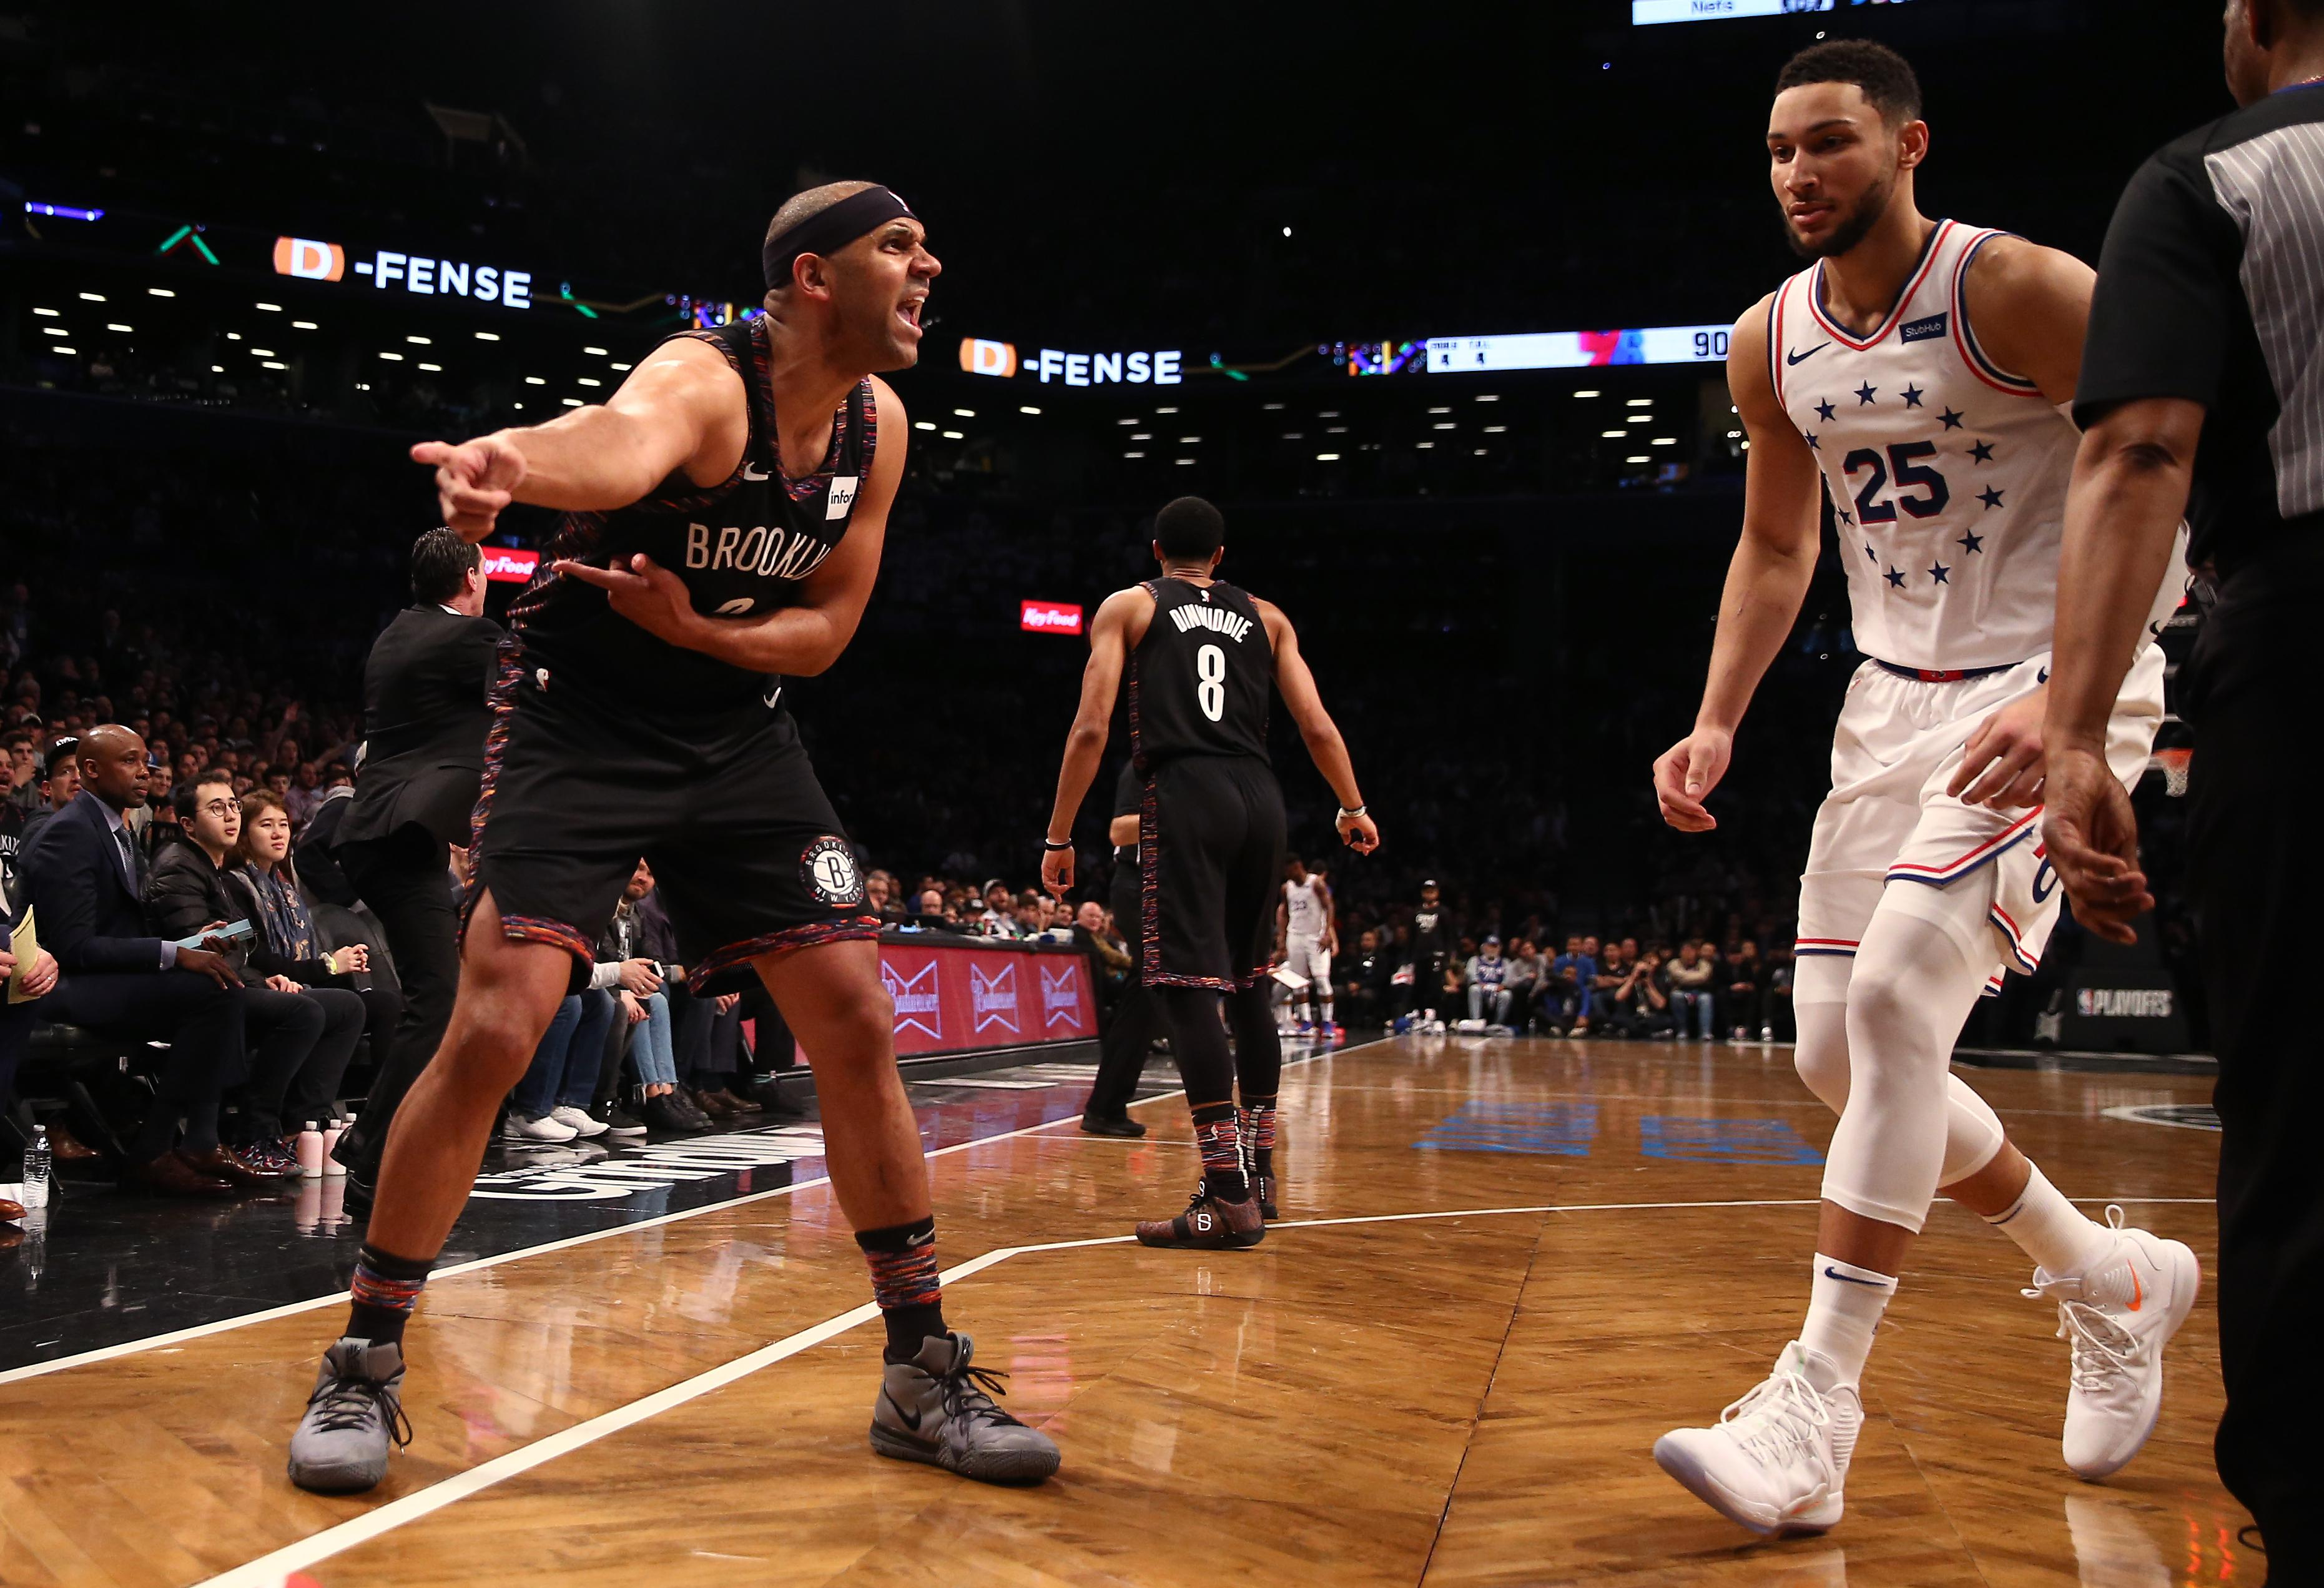 NEW YORK, NEW YORK - APRIL 18: Jared Dudley #6 of the Brooklyn Nets reacts after a play in the third quarter against the Philadelphia 76ers during game three of Round One of the 2019 NBA Playoffs at Barclays Center on April 18, 2019 in the Brooklyn borough of New York City. NOTE TO USER: User expressly acknowledges and agrees that, by downloading and or using this photograph, User is consenting to the terms and conditions of the Getty Images License Agreement. (Photo by Elsa/Getty Images)